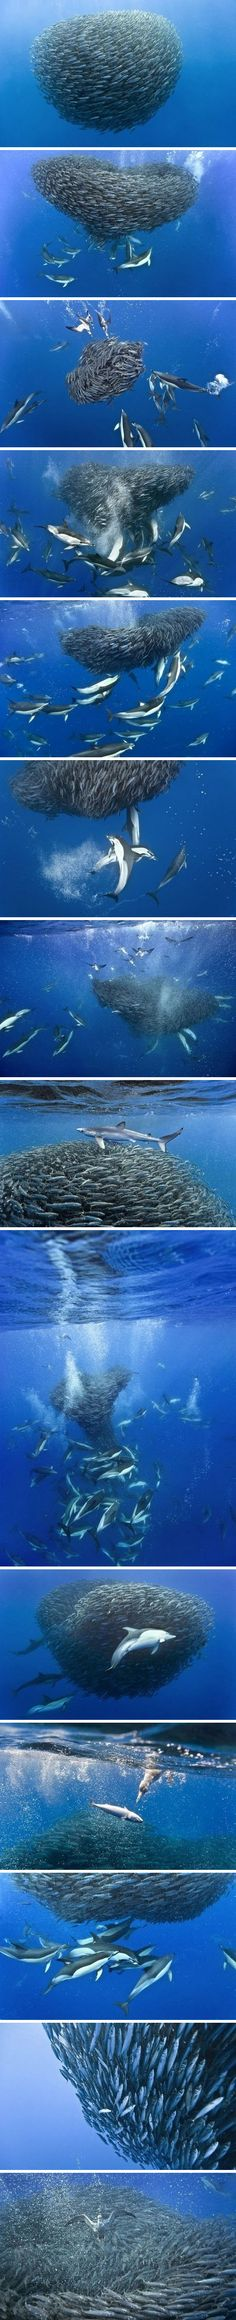 #dolphins and the #sardine run by Christopher Soun